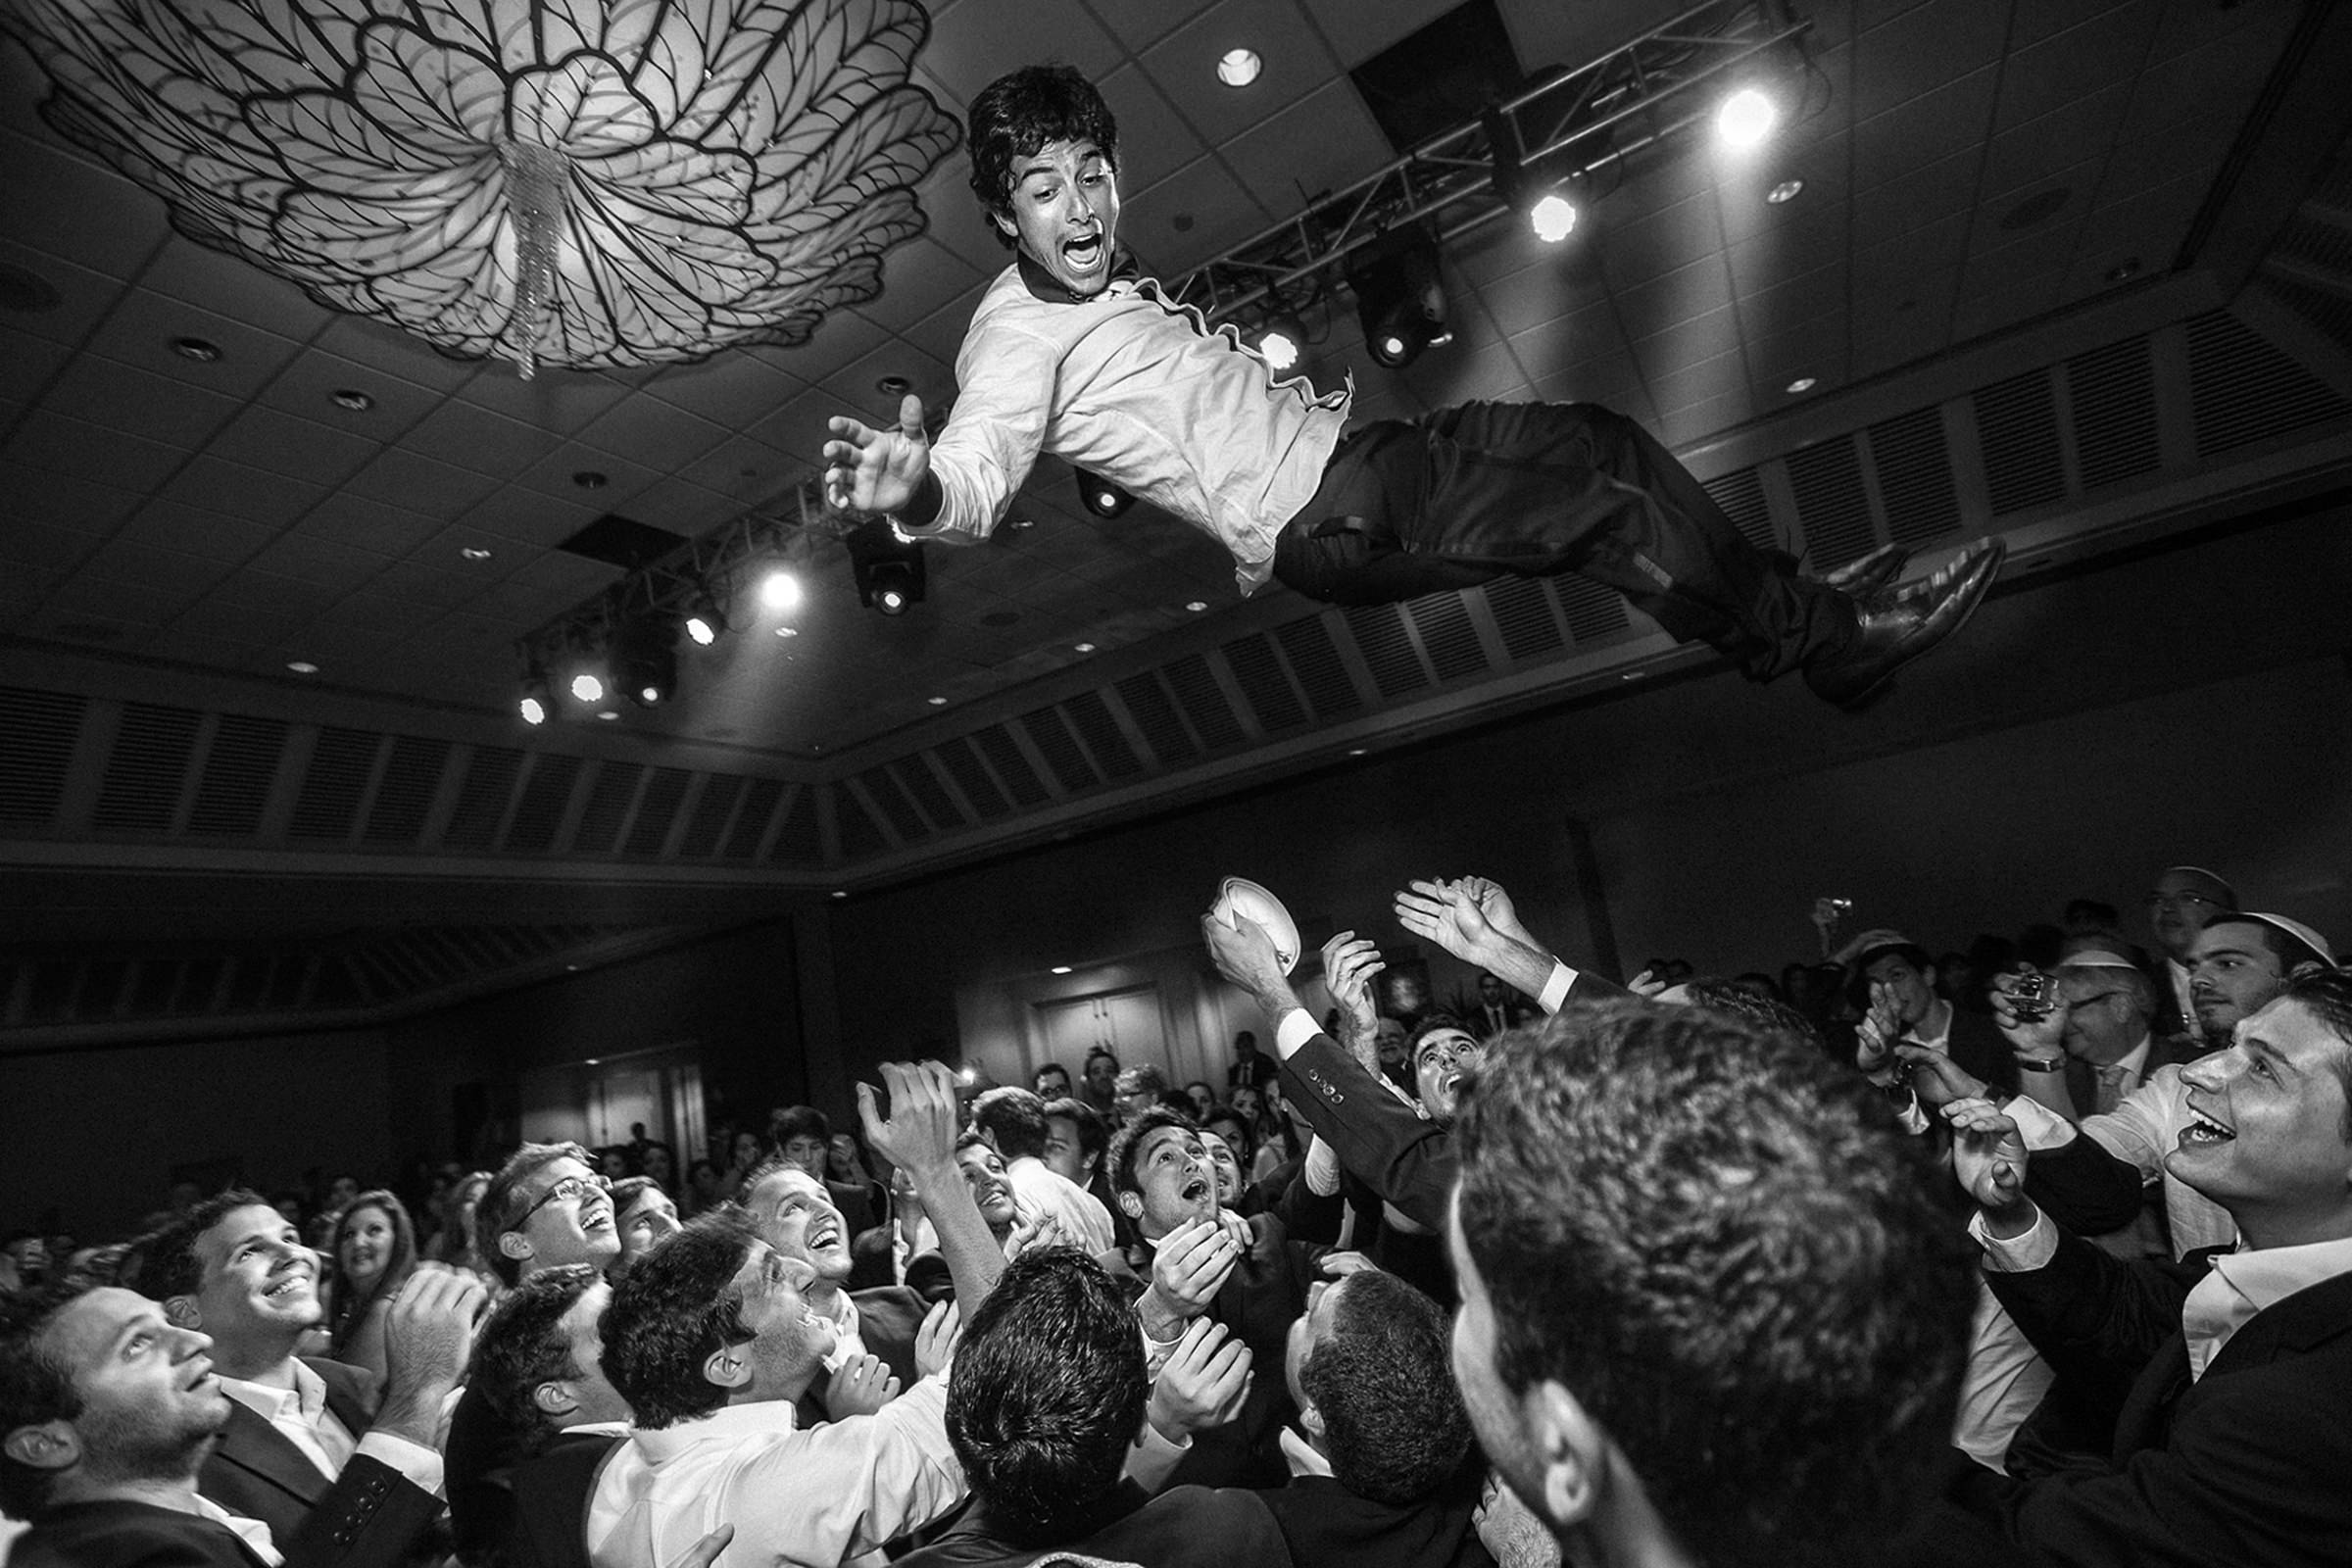 Groom tossed above crowd at wedding reception - photo by El Marco Rojo